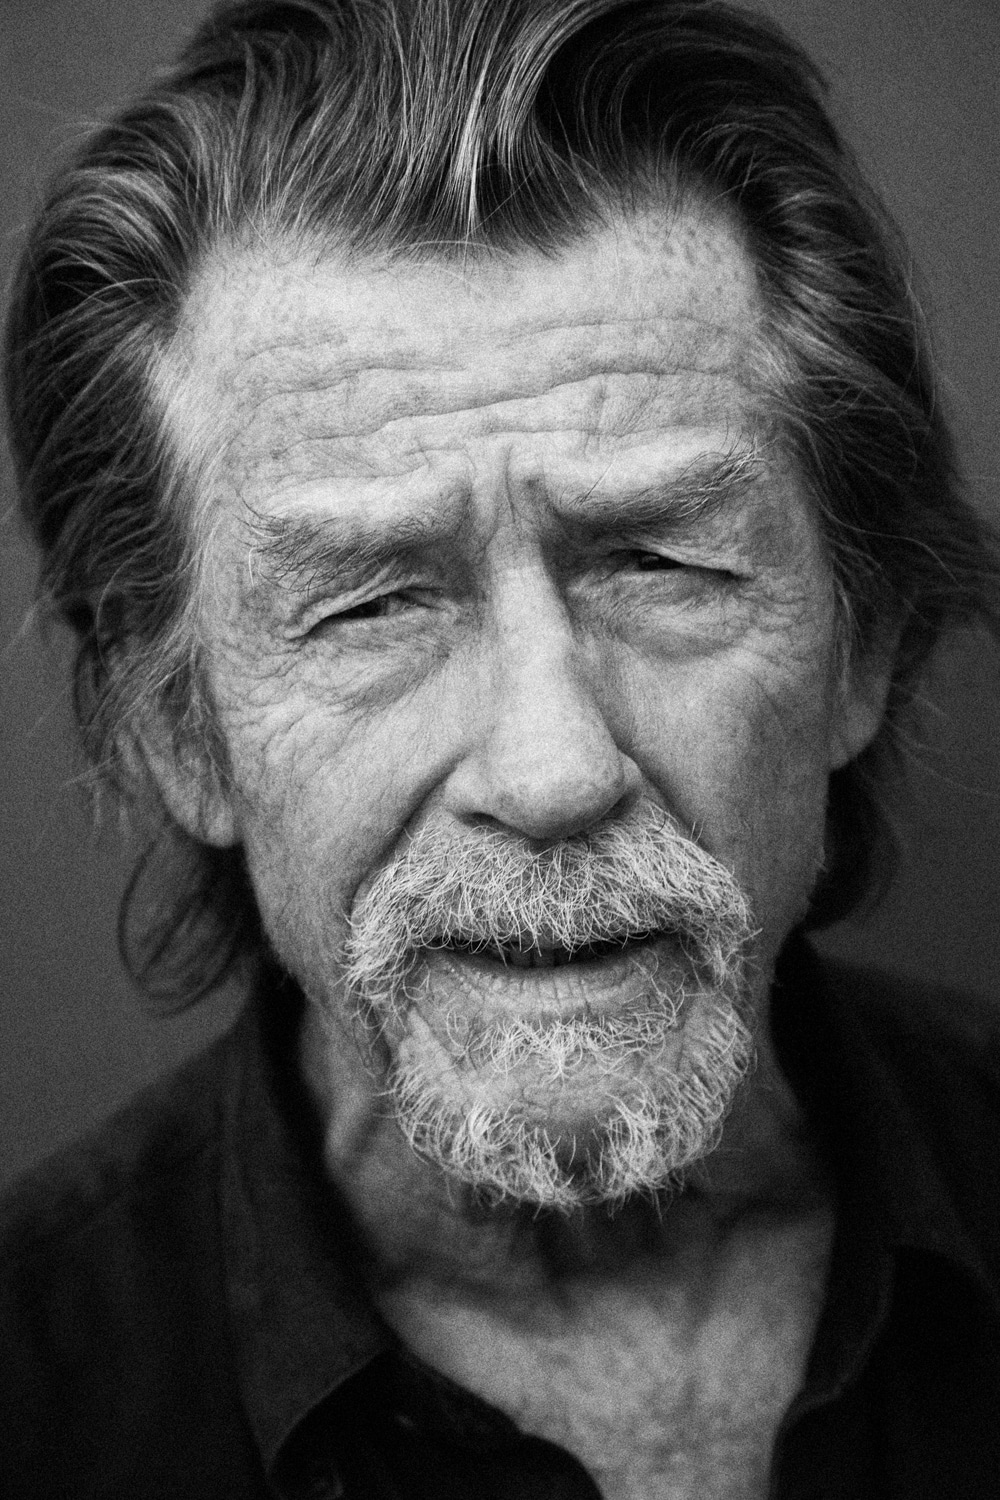 JOHN HURT ON SOHO ROOFTOP PHOTOGRAPHED BY BARRY MCCALL FOR PHO20GRAPHY